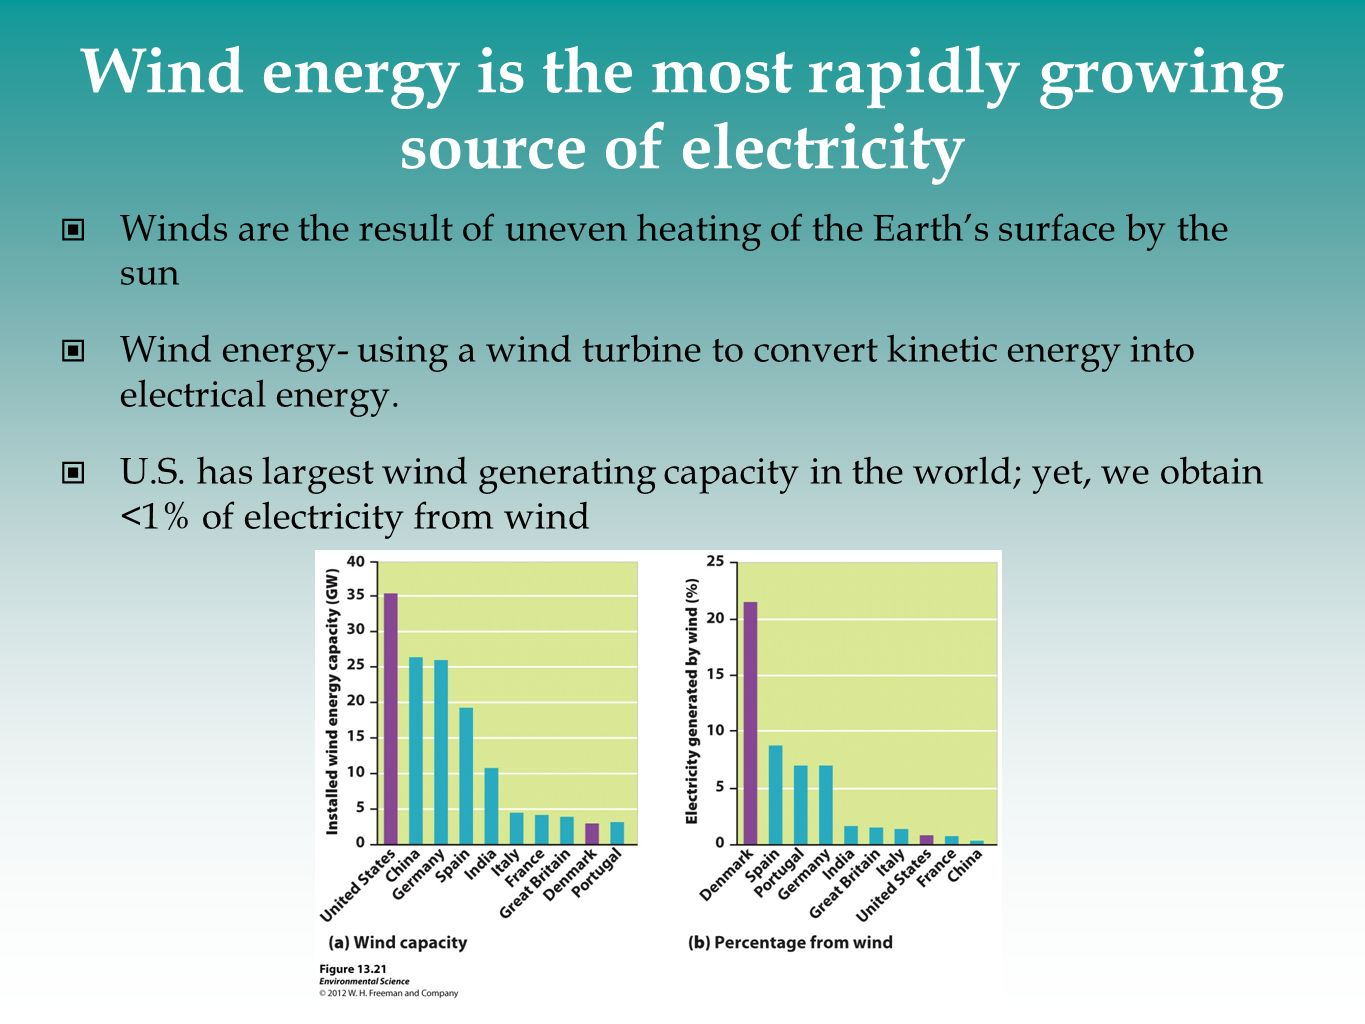 Wind energy is the most rapidly growing source of electricity